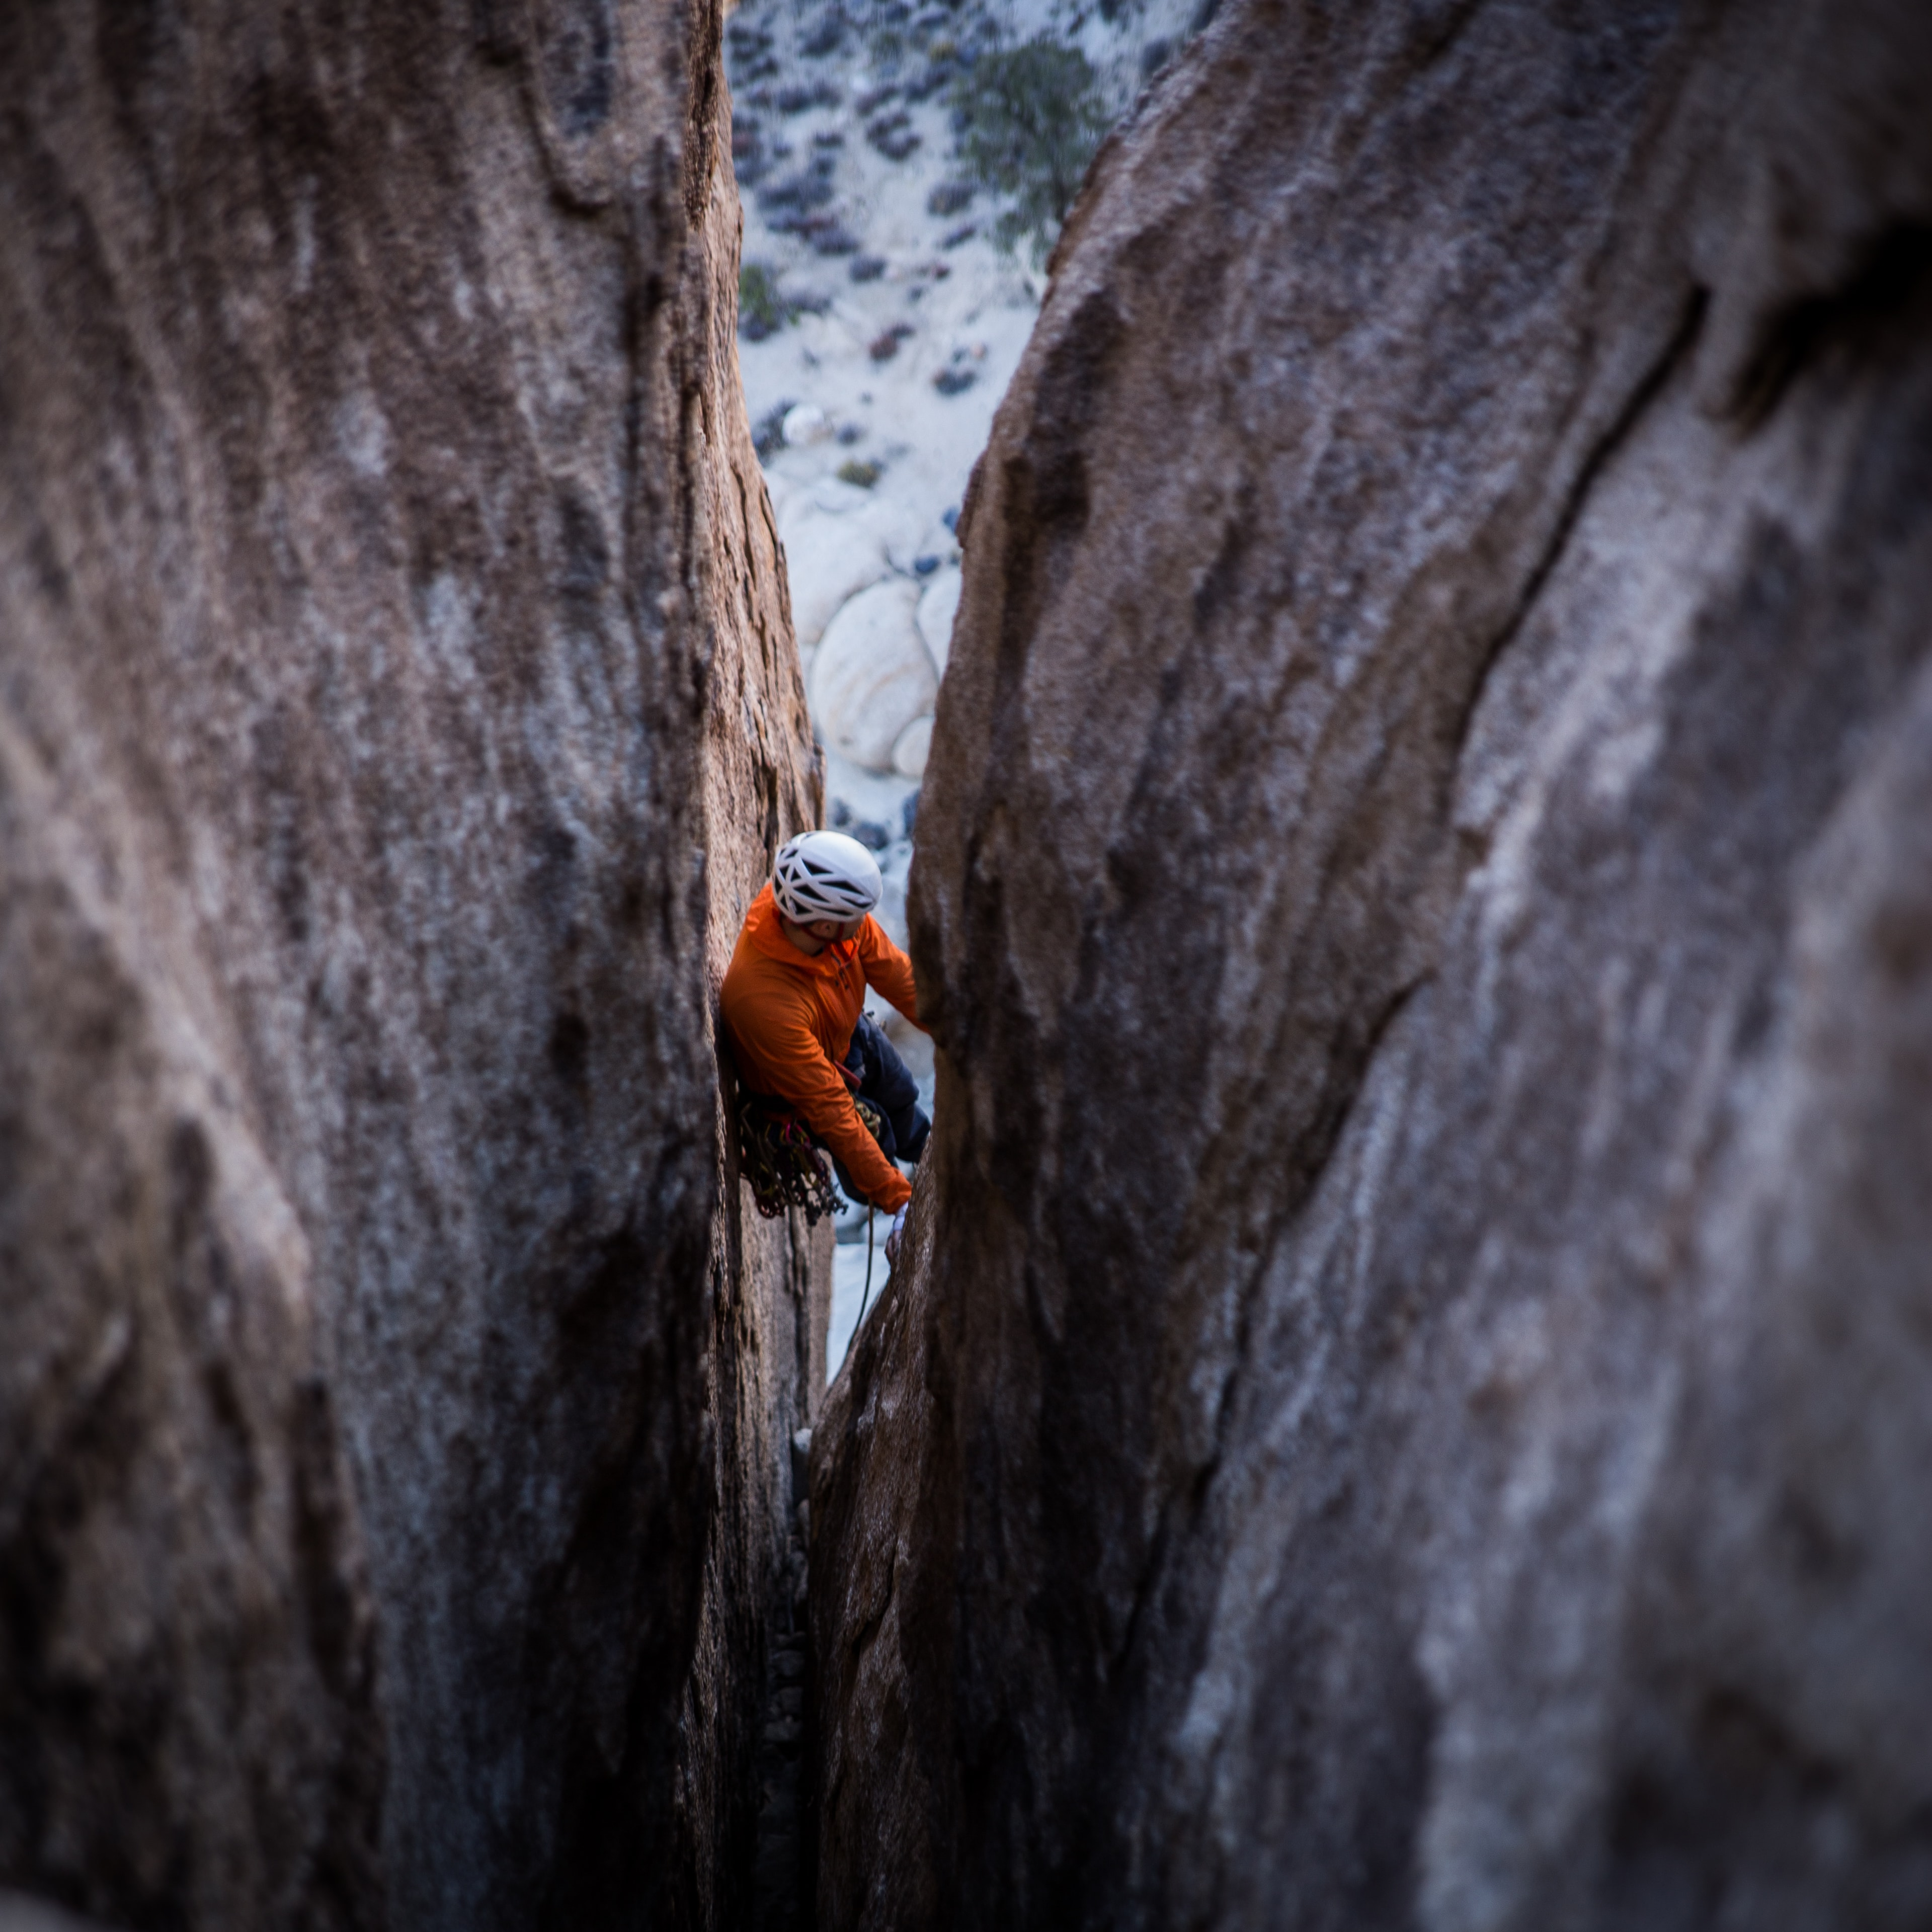 A person wearing an orange sweater and a white helmet rock climbing at Joshua Tree National Park Visitor Center